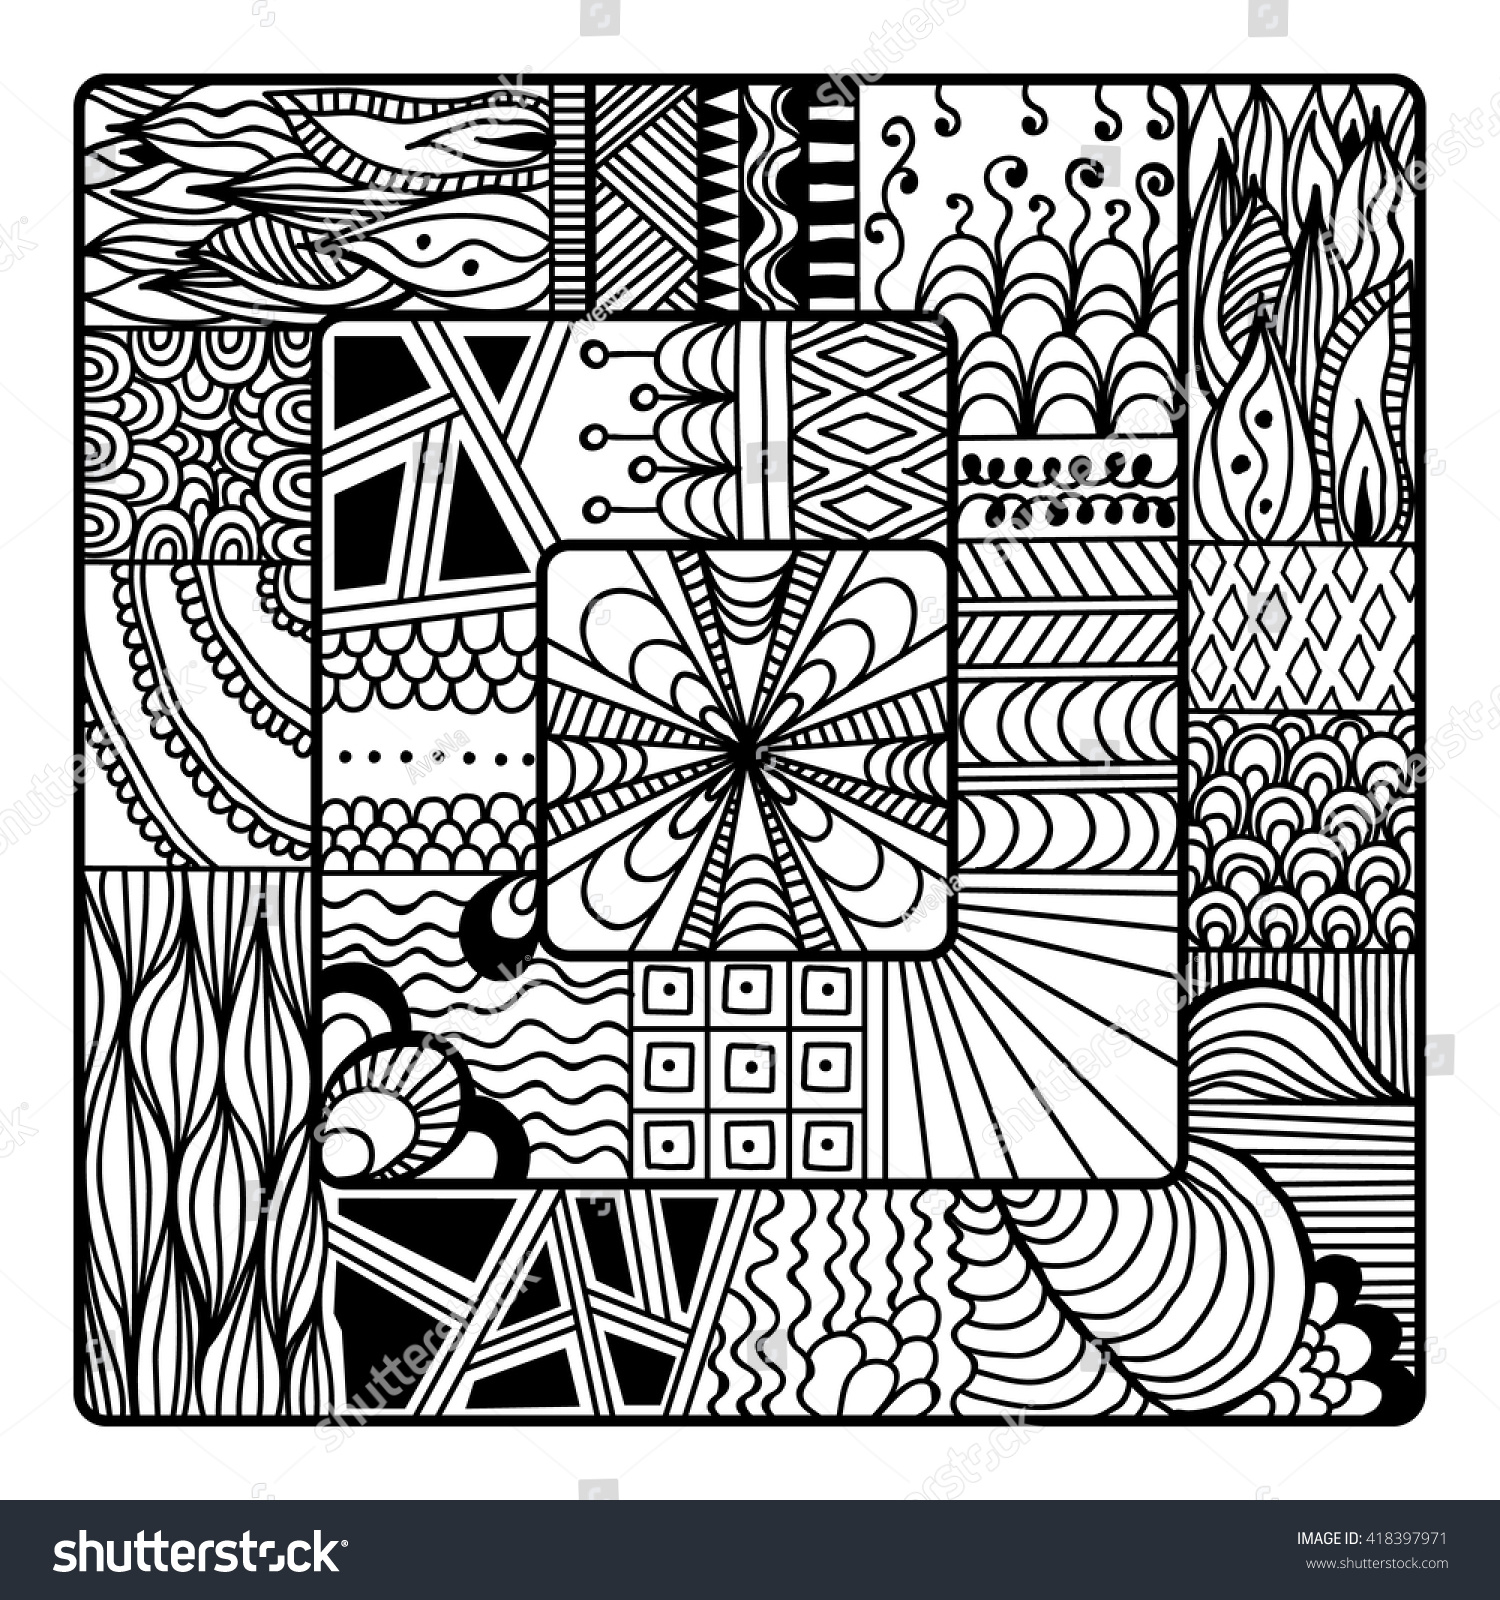 Square Zentangle Vector Art Coloring Book Stock Vector 418397971